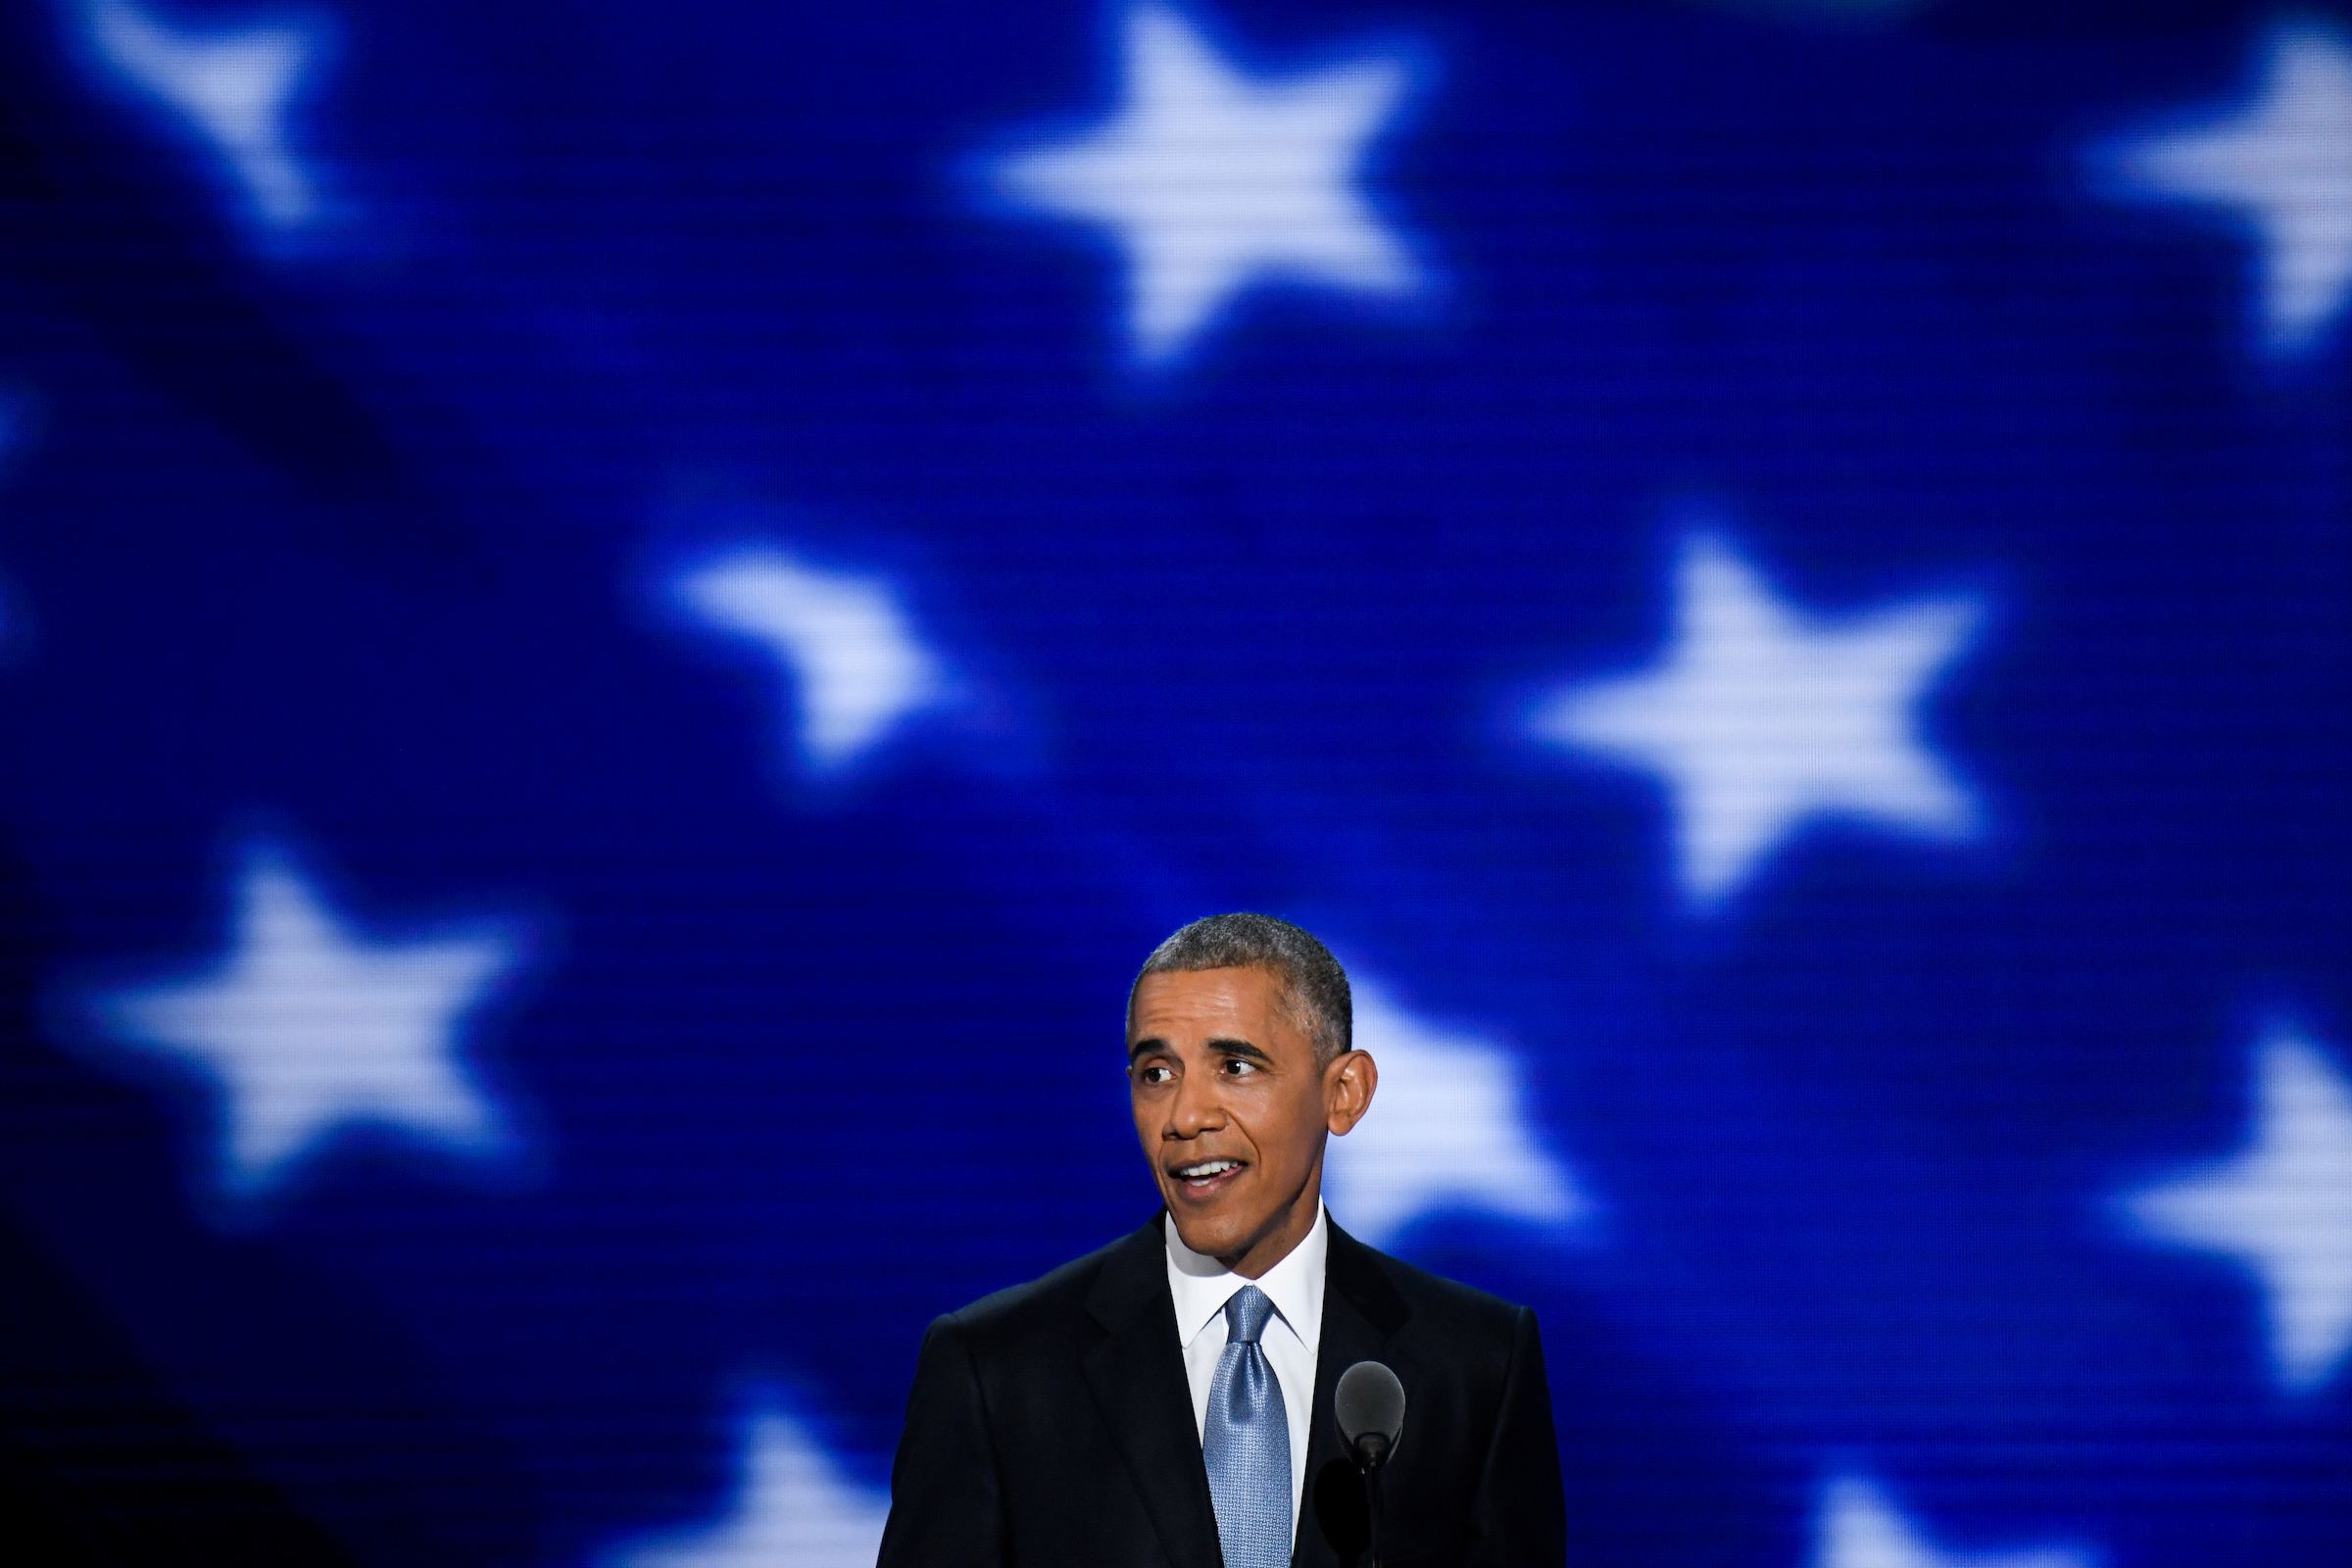 President Barack Obama speaks at the Democratic National Convention in Philadelphia on Wednesday, July 27, 2016. (Photo By Bill Clark/CQ Roll Call)